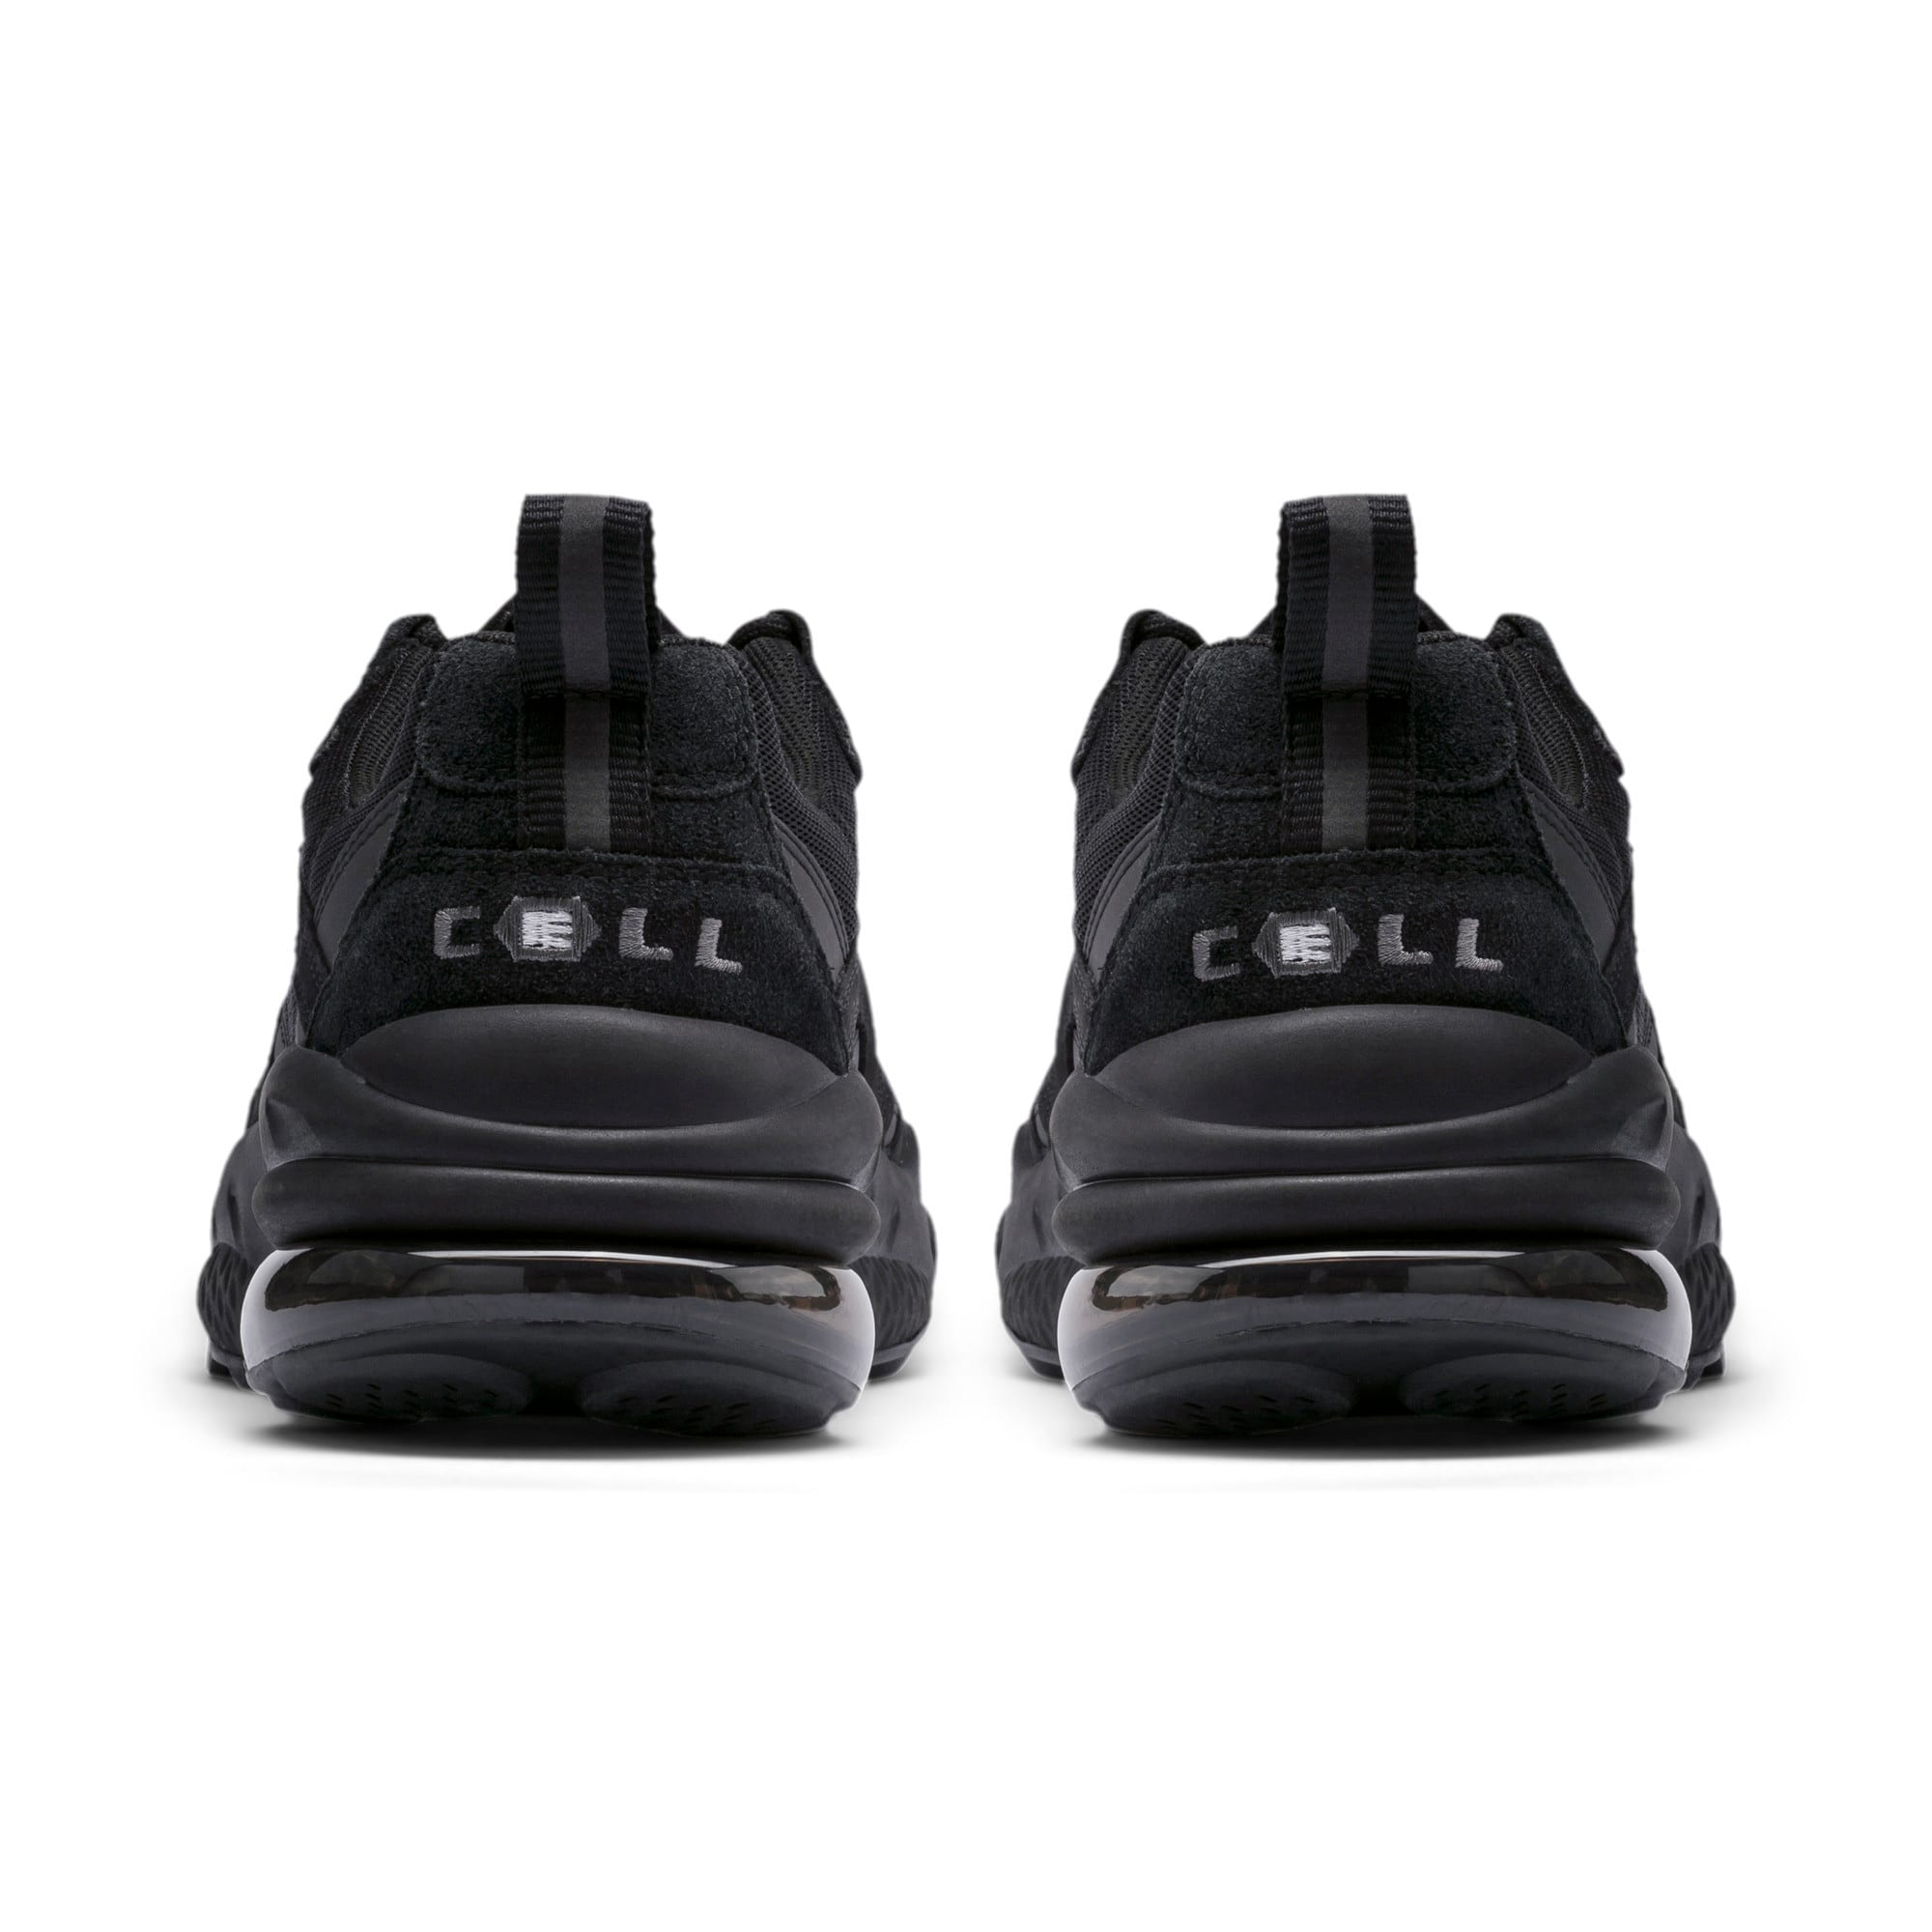 Thumbnail 3 of CELL Venom Blackout Sneakers, Puma Black-Puma Black, medium